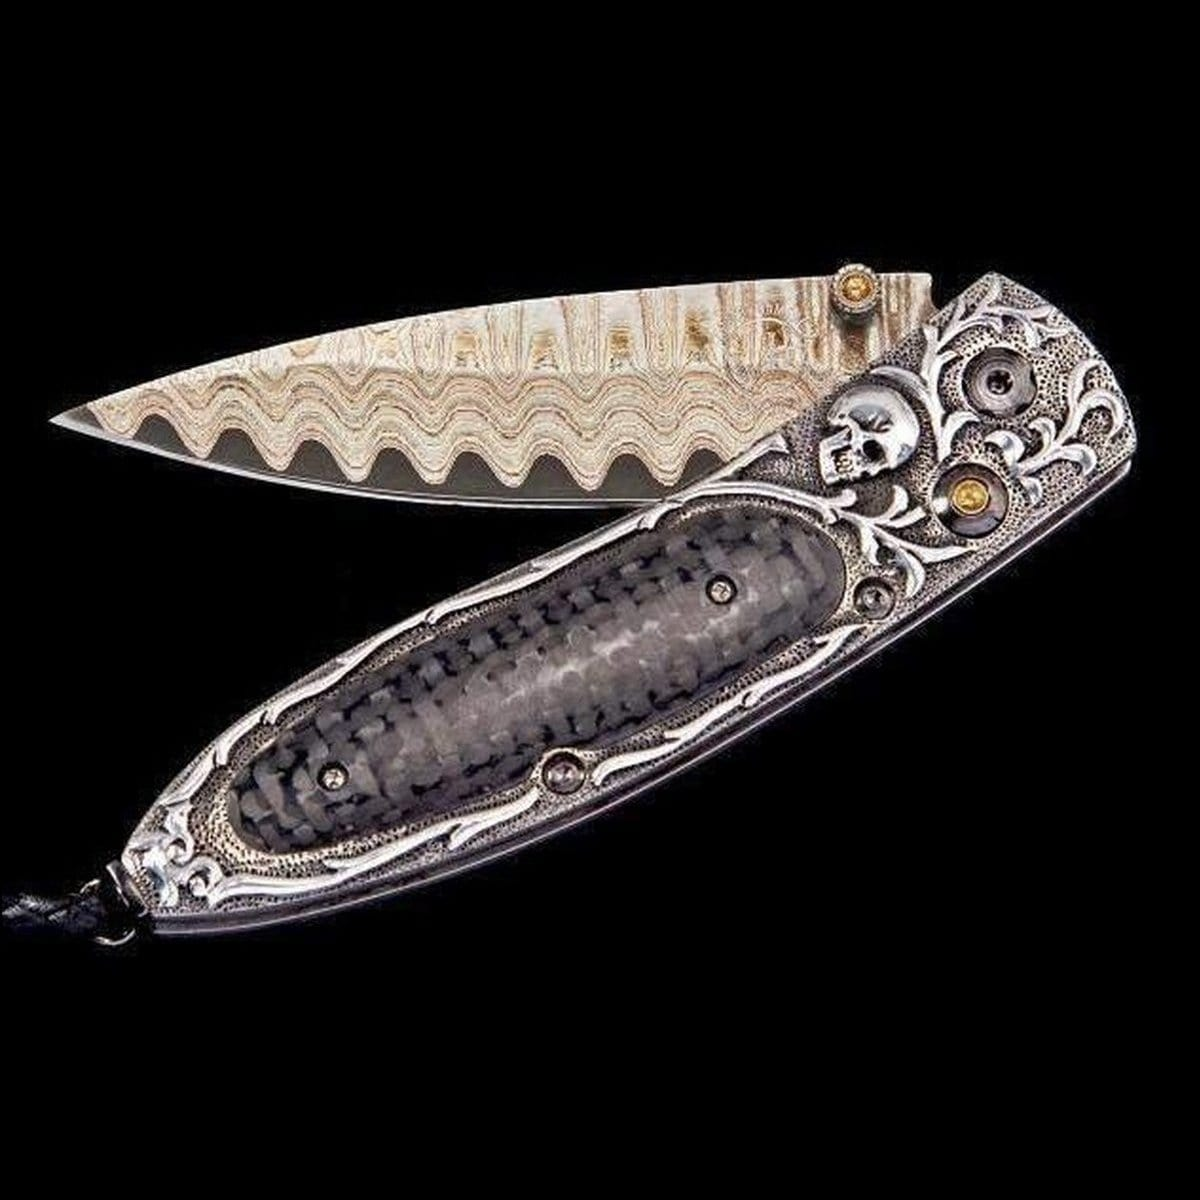 Monarch Crosair Limited Edition Knife - B05 Crosair-William Henry-Renee Taylor Gallery